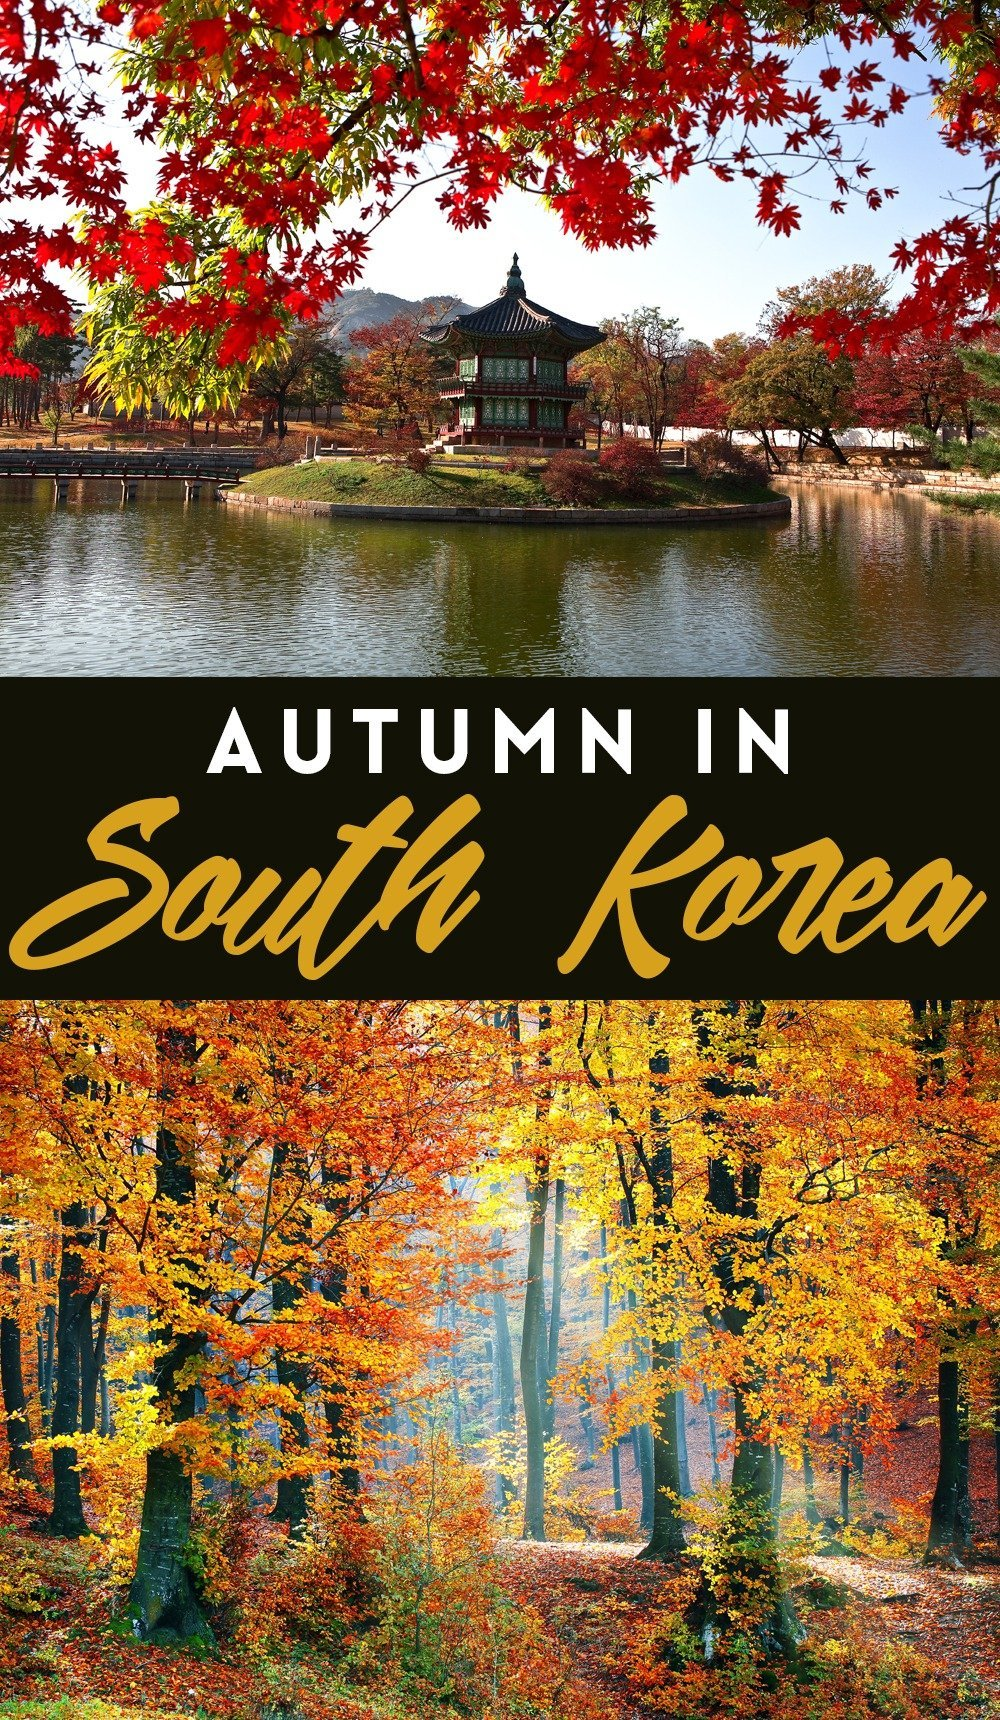 Find the perfect spots in South Korea to see the beautiful colors of fall. Click through to get the perfect guide to spending autumn in South Korea!